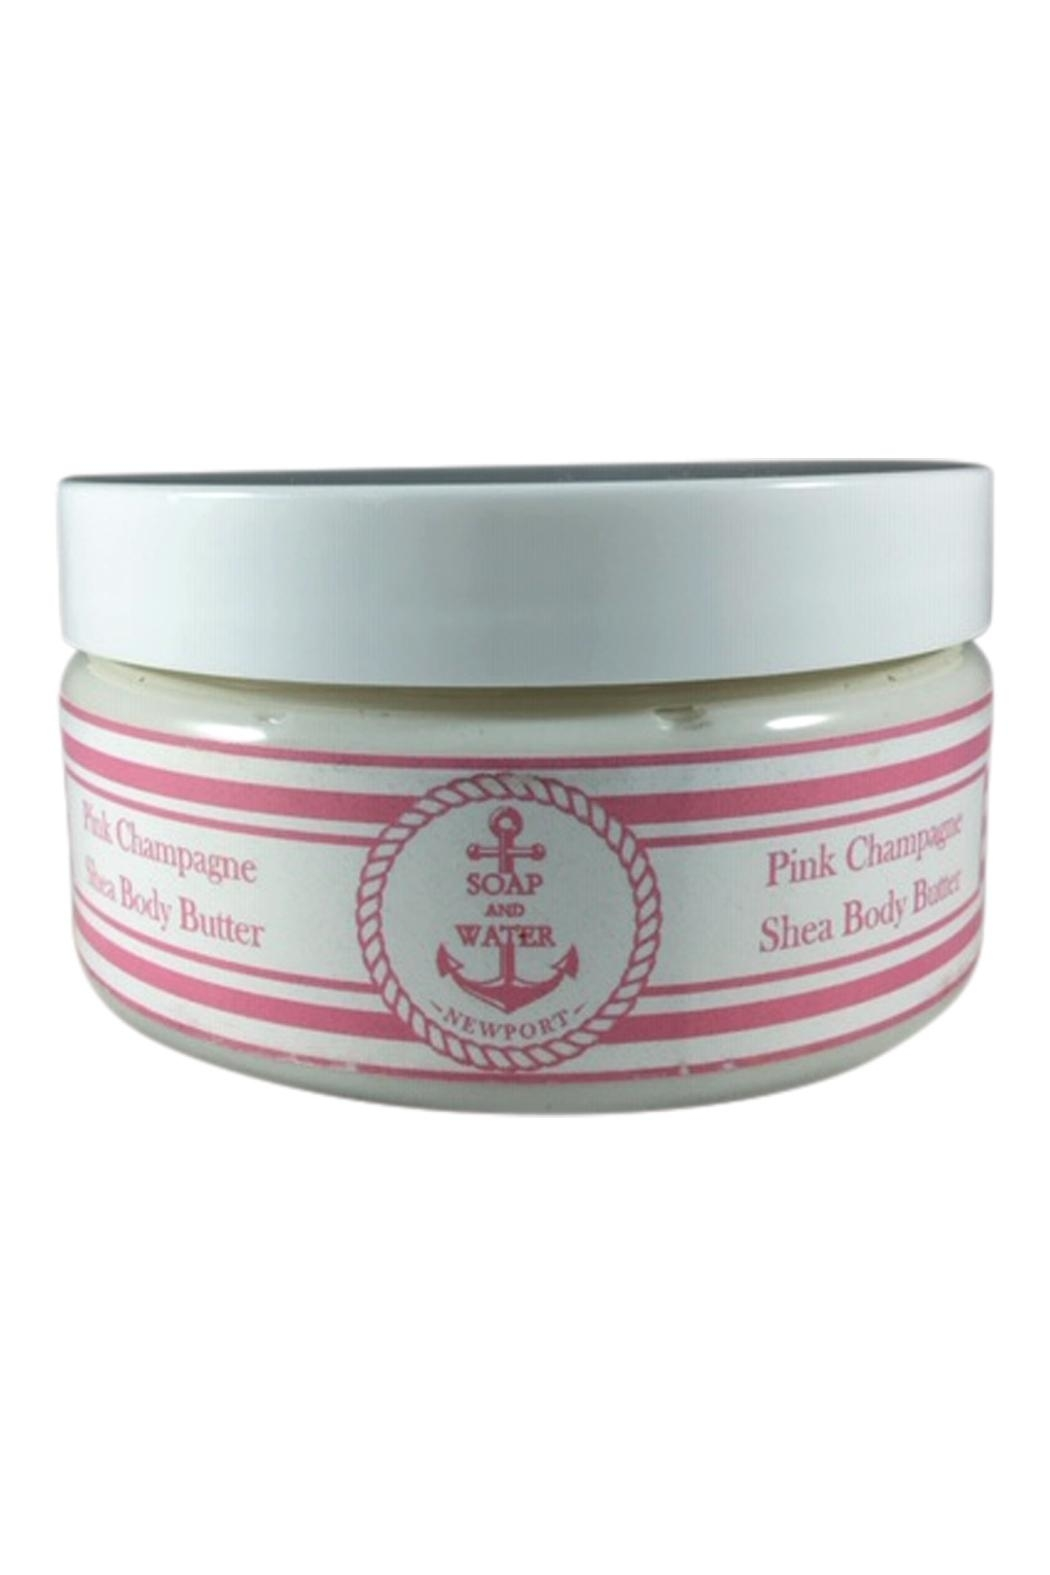 Soap and Water Newport PINK CHAMPAGNE BODY BUTTER - Front Cropped Image